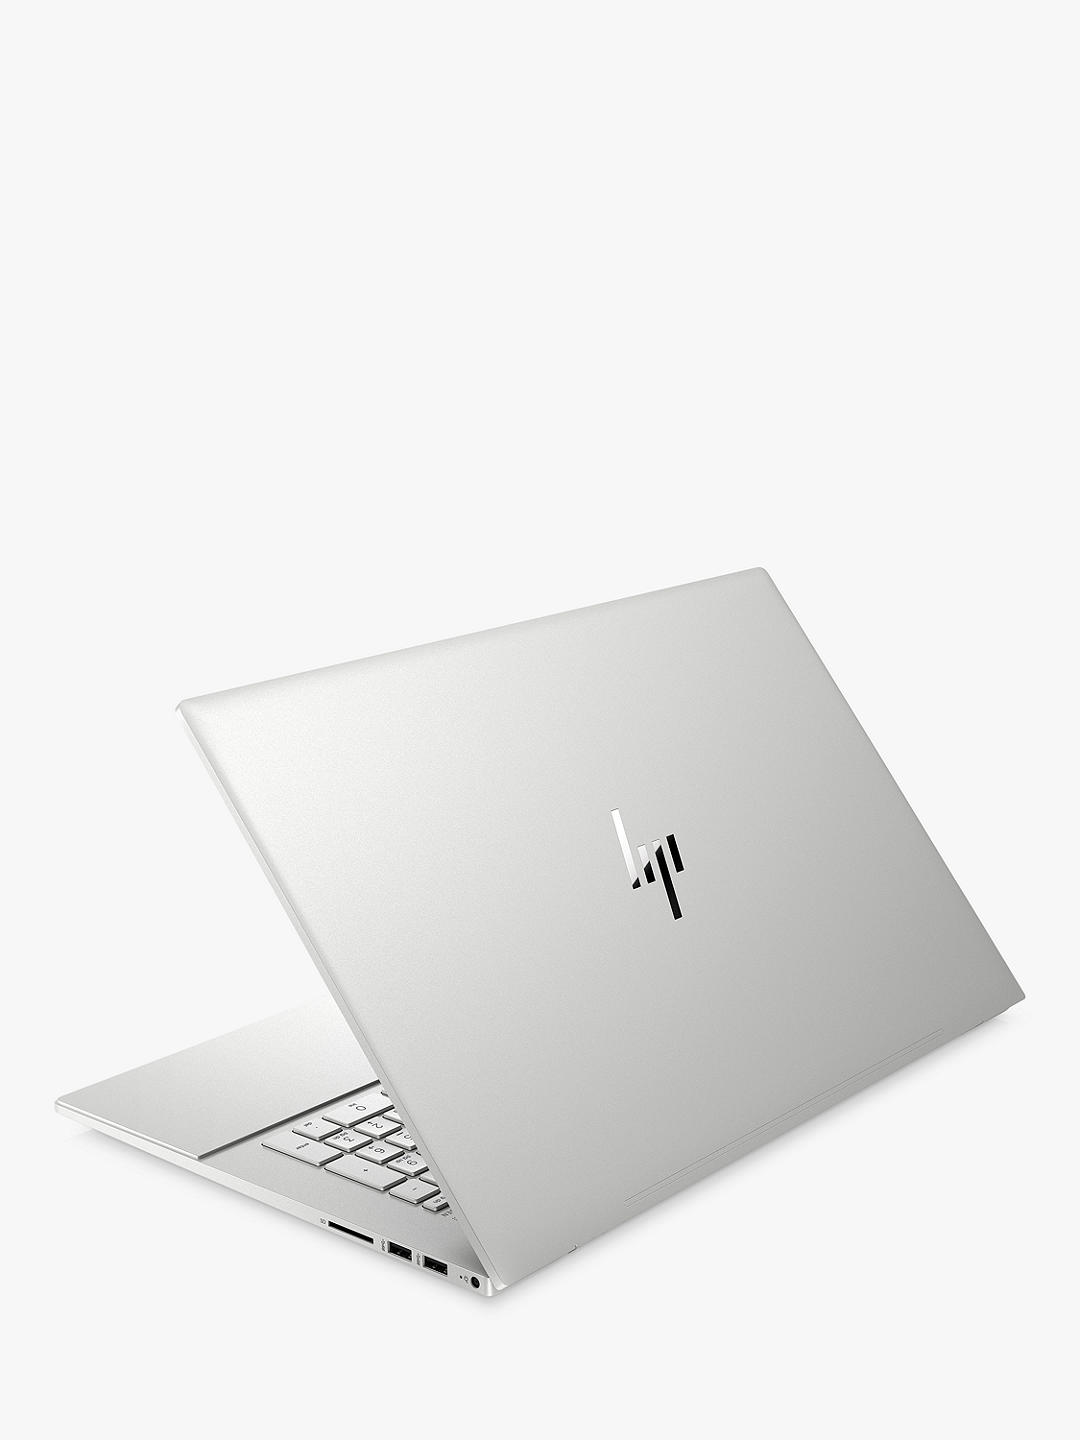 "Buy HP ENVY 17-cg0002na Laptop, Intel Core i7 Processor, 16GB RAM, 512GB SSD, 17.3"", Full HD, Silver Online at johnlewis.com"